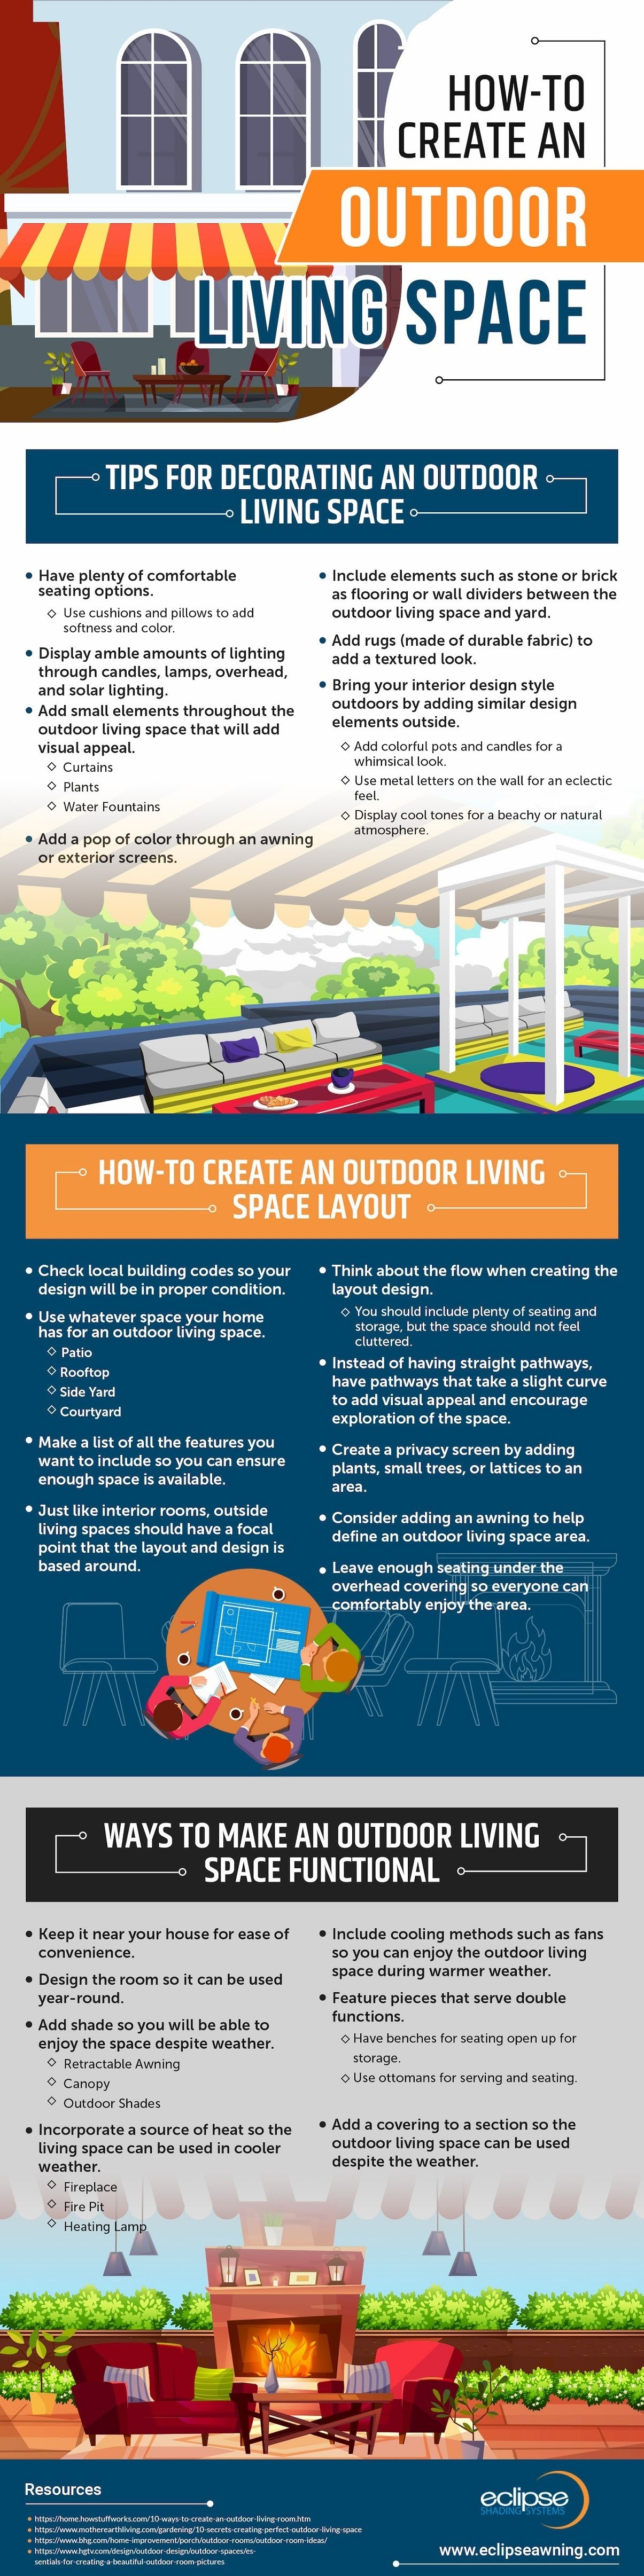 How to Create an Outdoor Living Space #infographic